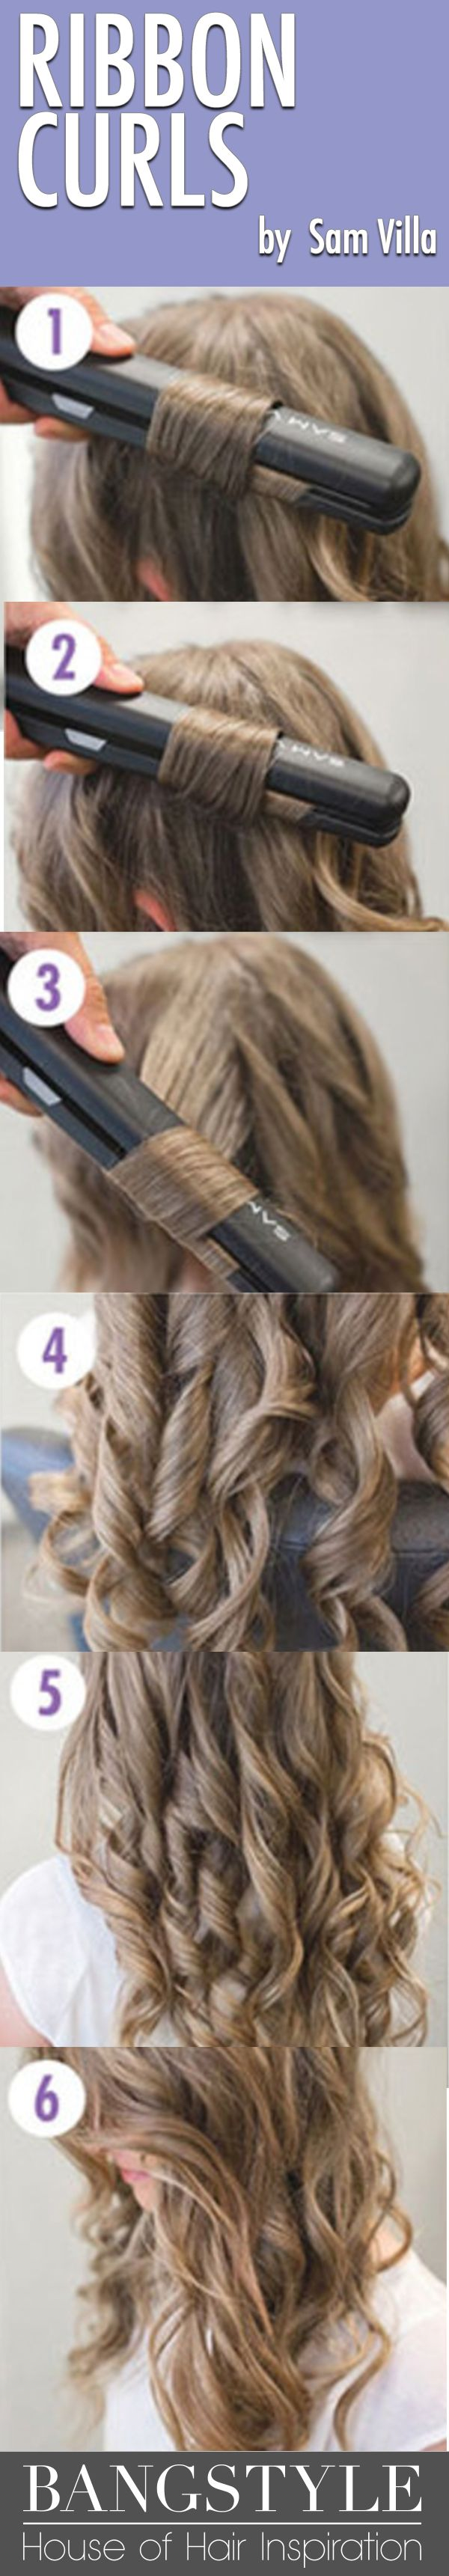 64 best Hairstyles images on Pinterest